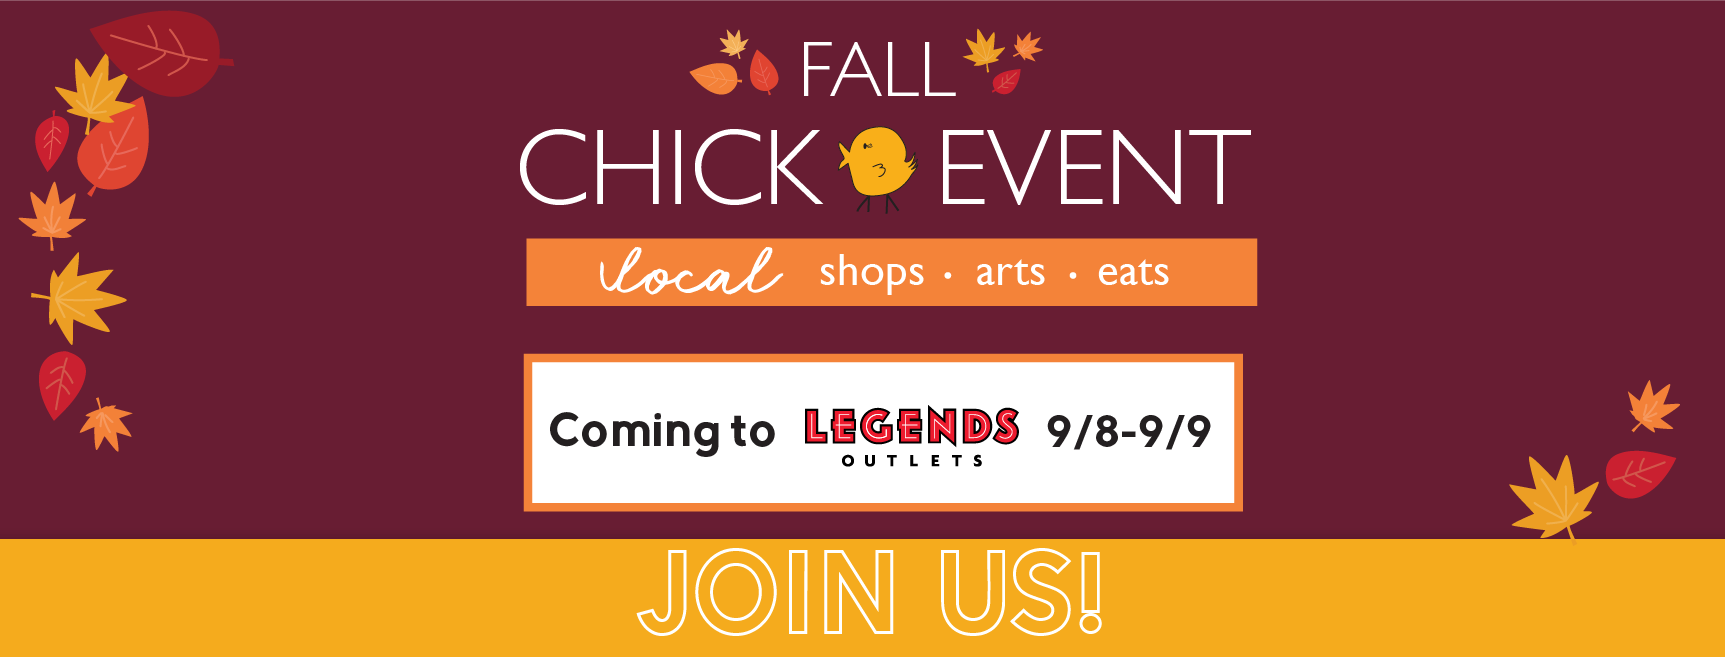 Join us September 8th-9th for the Fall Chick Event  Pop-Up Market Place at the Legends Shopping Center (Covered Event)  To get to the rooftop, go up the stairs like you are going to Dave and Busters.   There is parking lot, use the 2nd floor parking and walk across the landing.  You will find us in the center bar area. Rain or Shine we will be there, look forward to seeing you.   September 8th - 10am - 6pm   September 9th - 11am - 4pm       1843 Village West Parkway Kansas City, KS 66111   Event will be located on the rooftop event space located near Dave & Busters   Sweet Streams Lavender will be hosting a DIY on Sunday 2pm come join us and make your own lavender sachet. We will talk about the benefits of lavender and you will get to take a your sachet home.